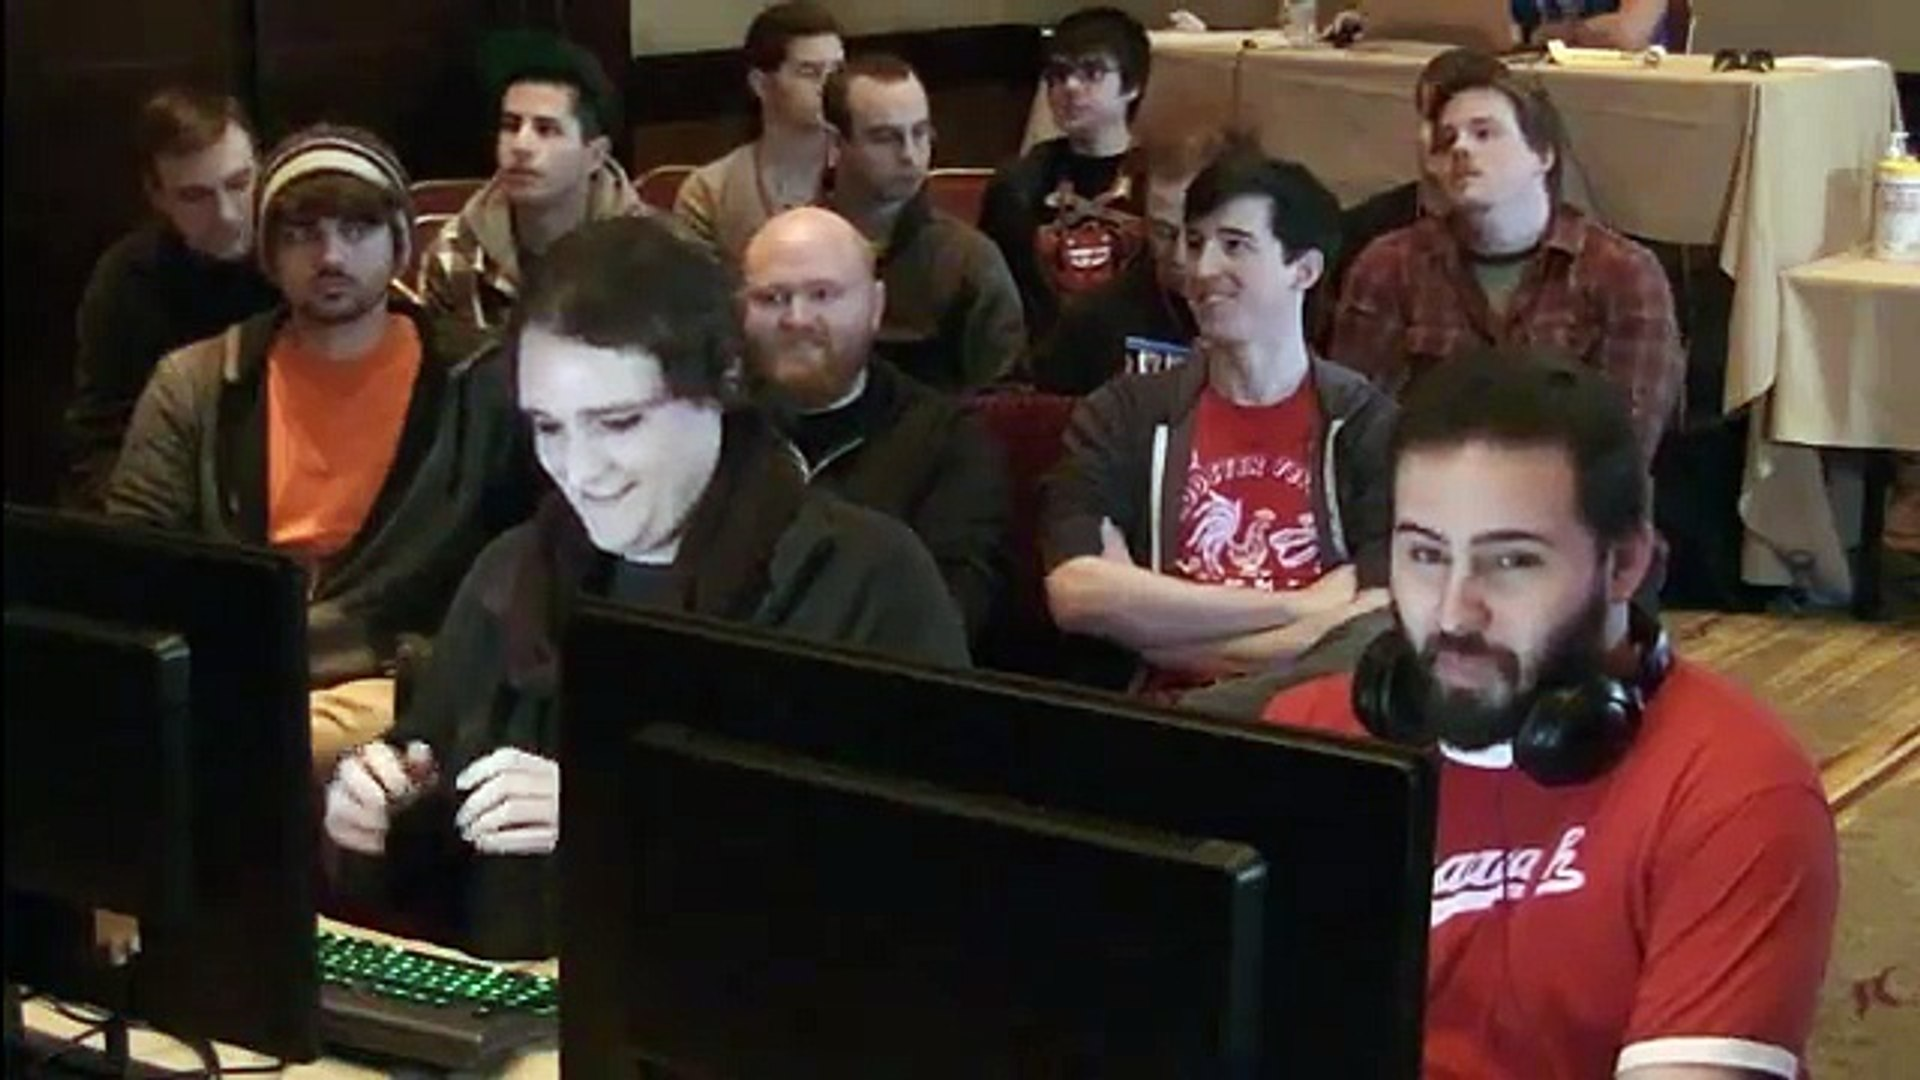 AGDQ new Binding of Isaac Race sagev3 vs Slackaholicus #AGDQnew